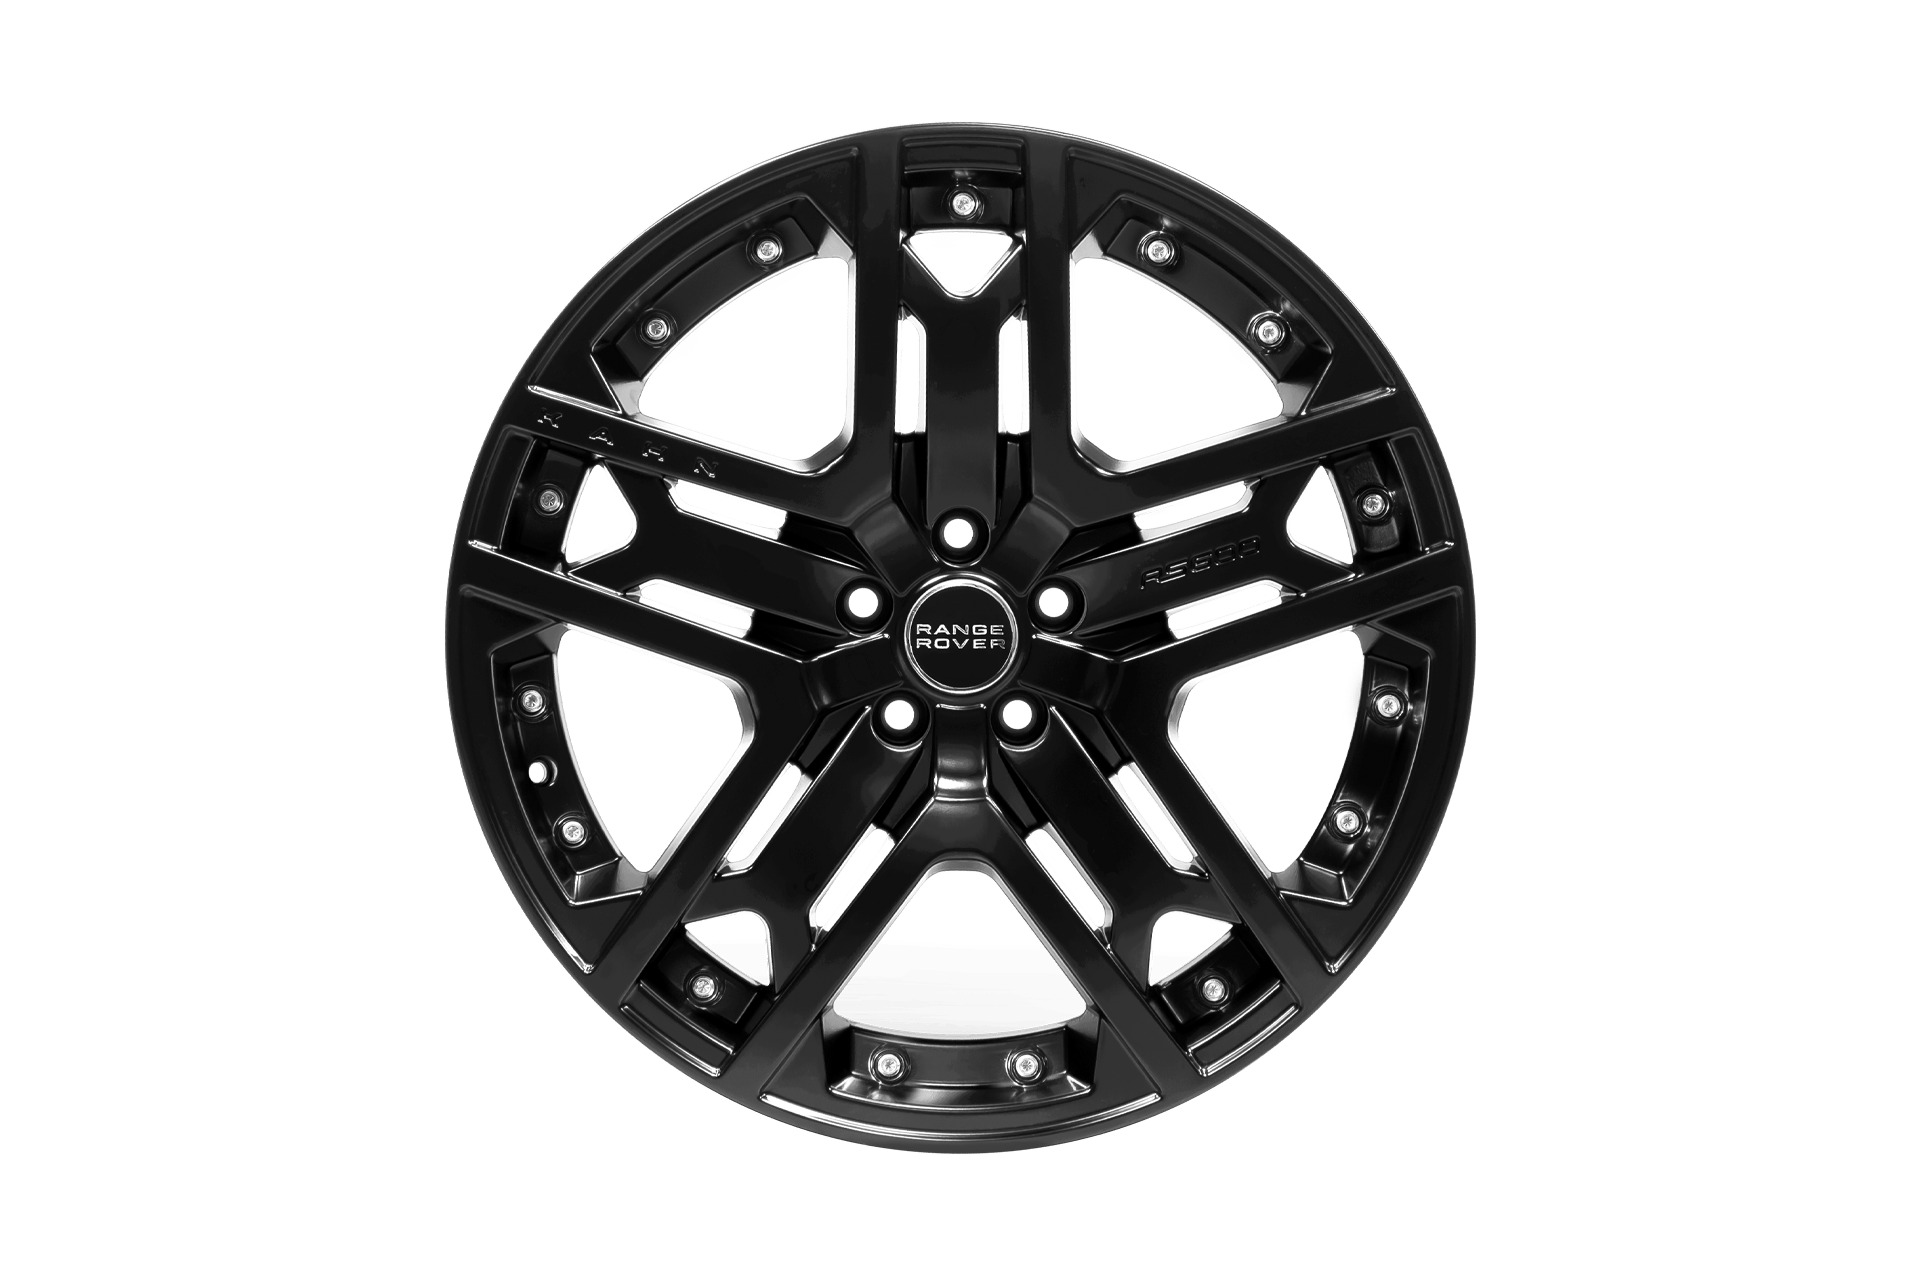 Range Rover (2002-2009) Rs600 Light Alloy Wheels by Kahn - Image 3254